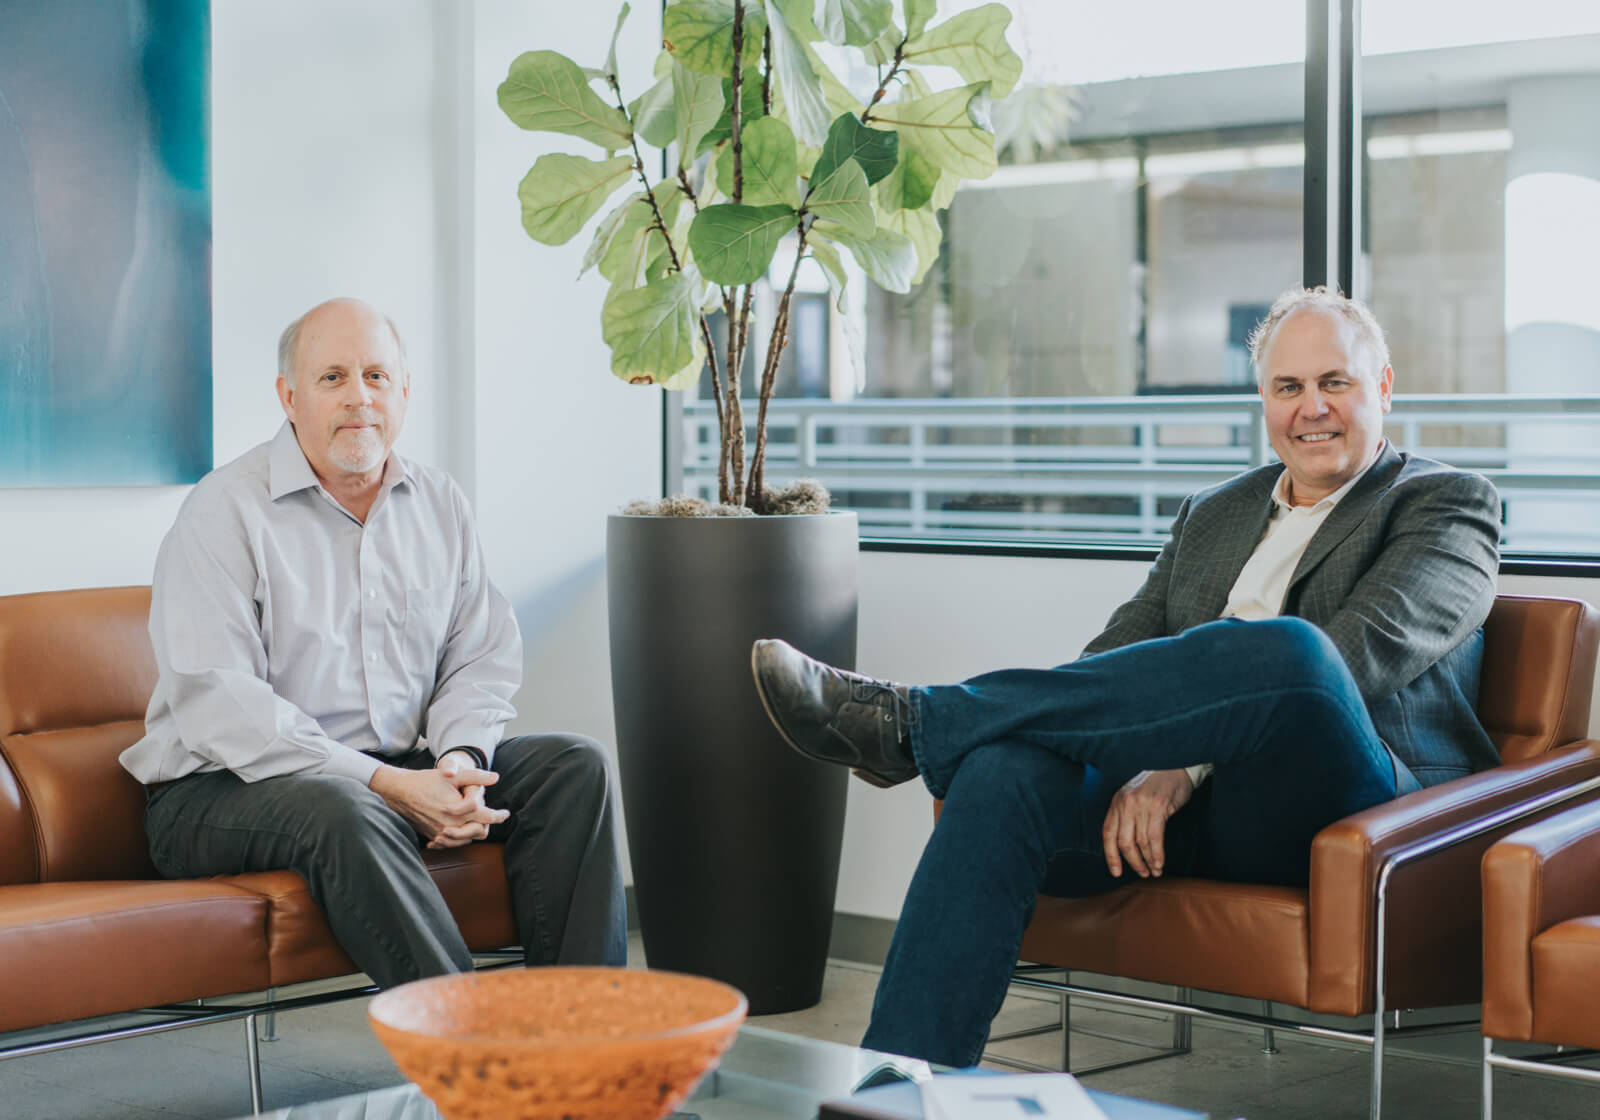 Two professional men sitting in an office setting